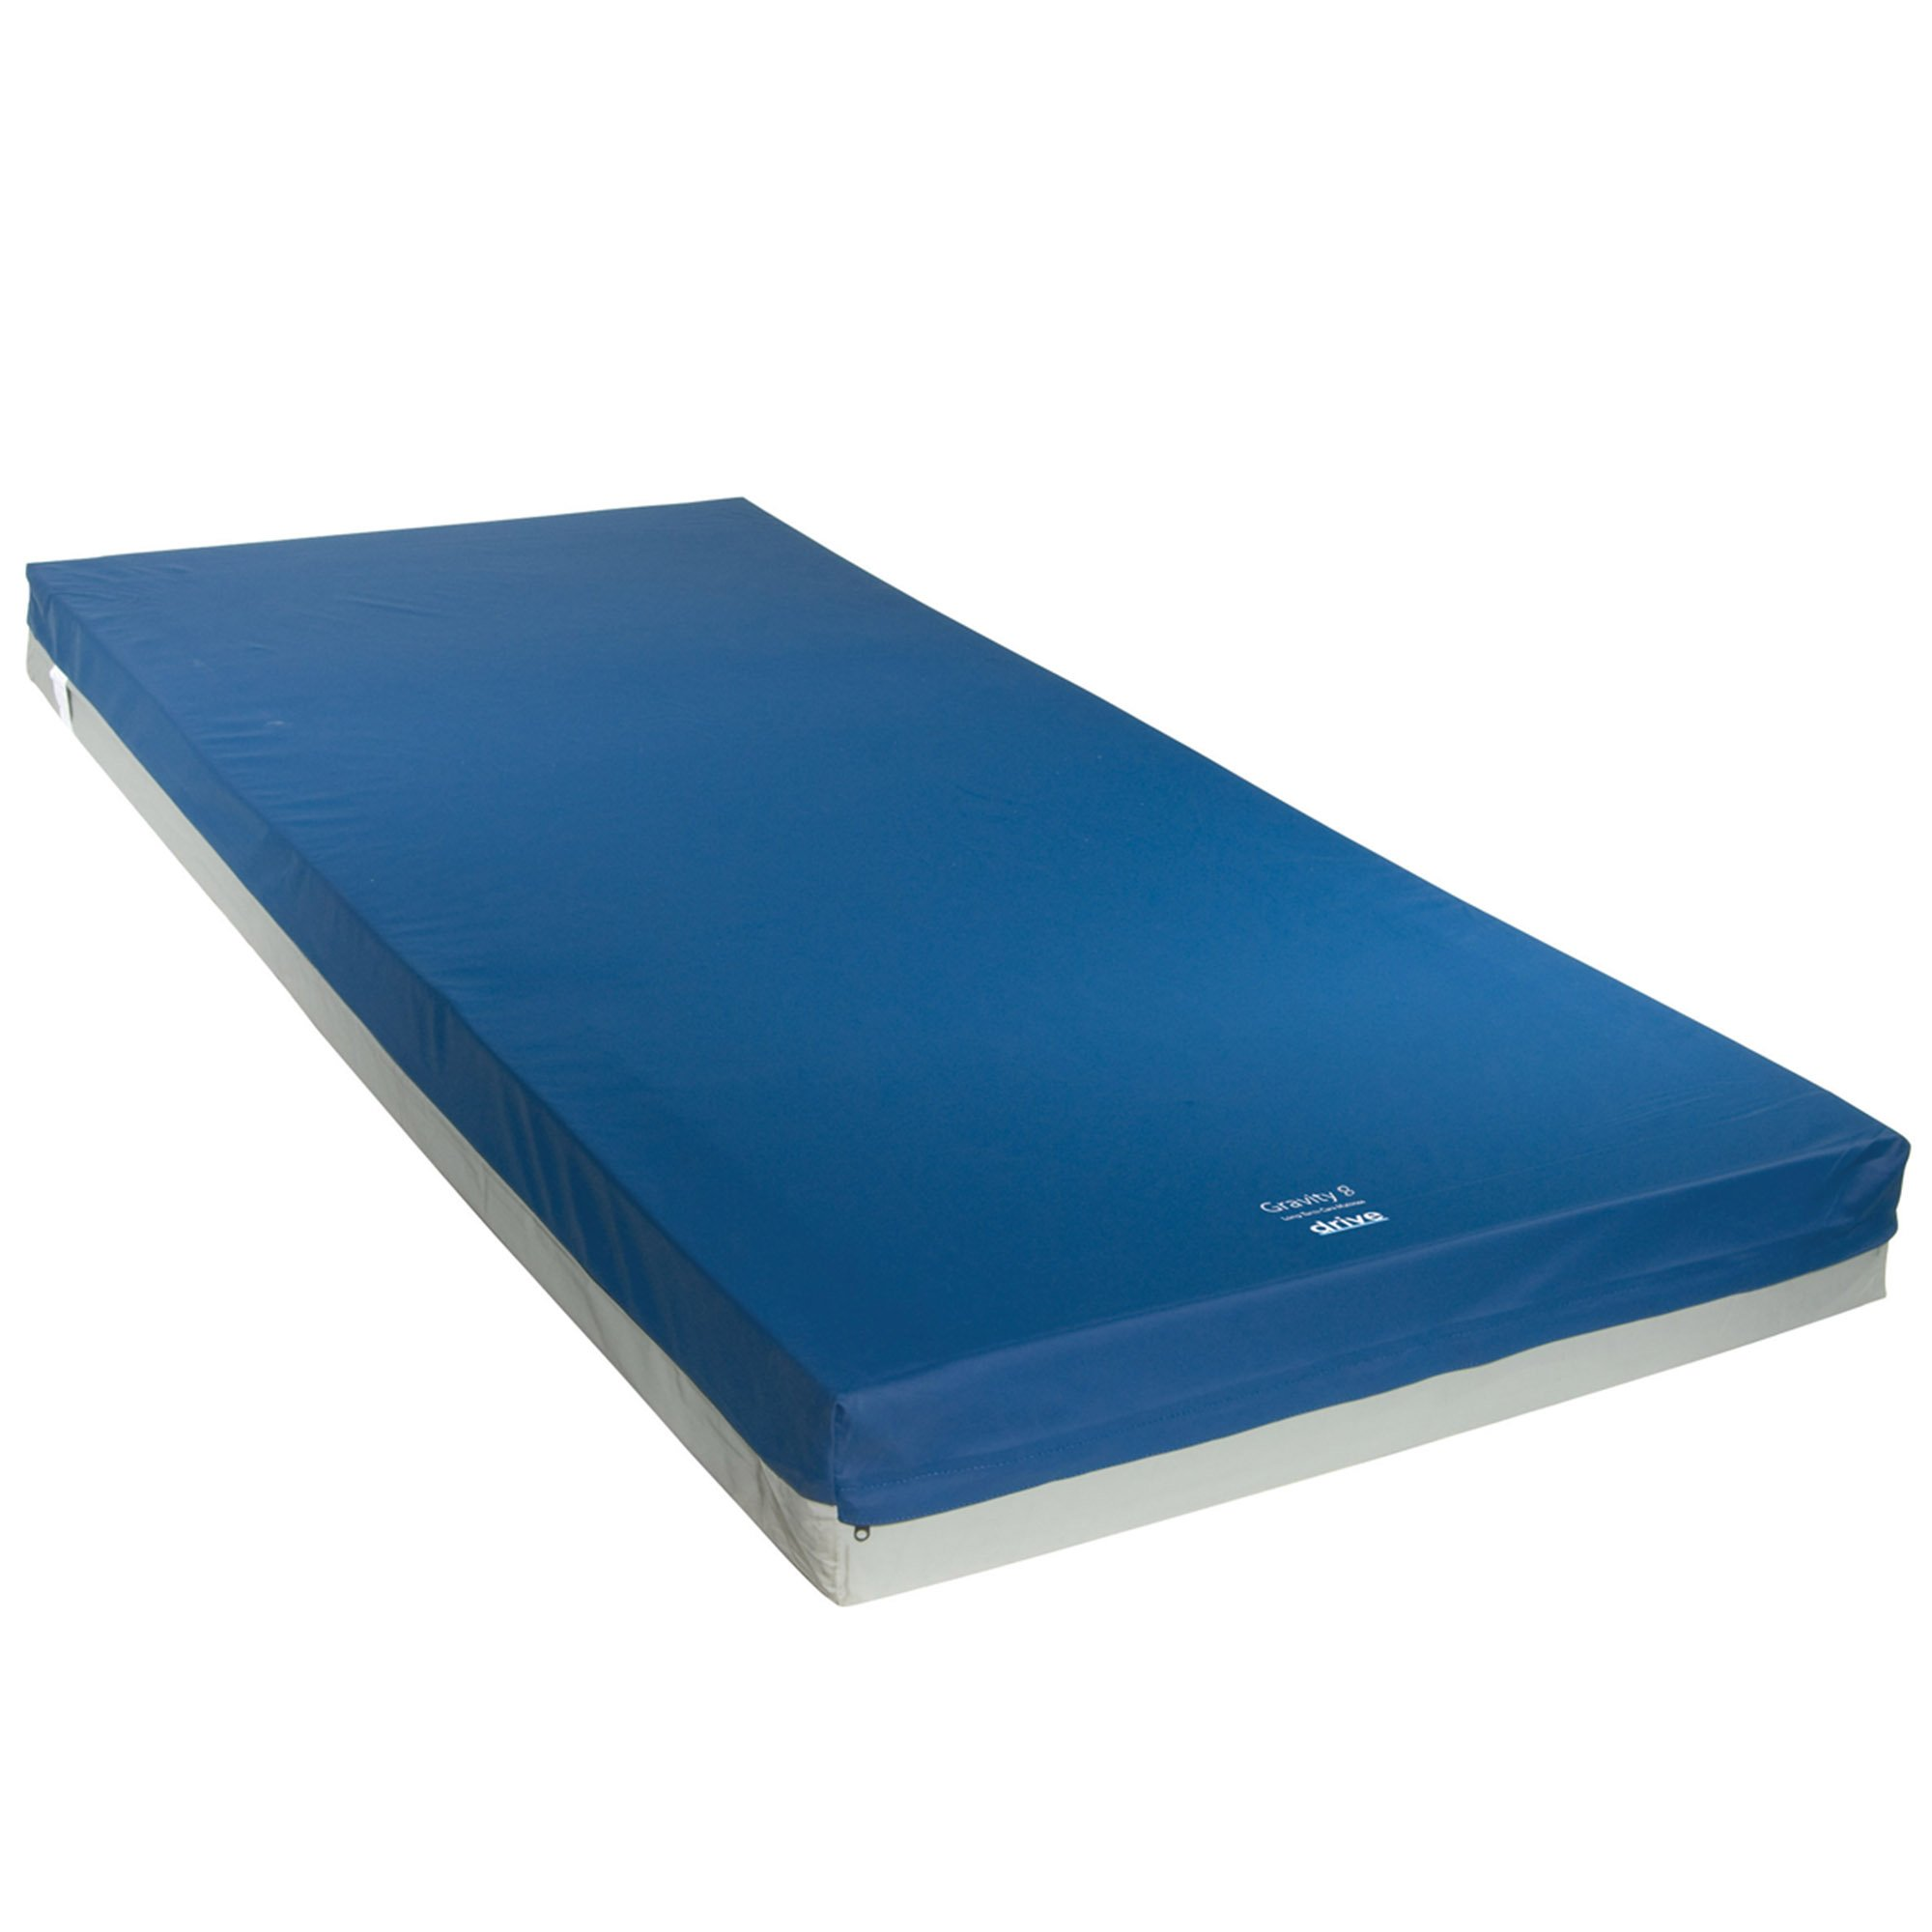 Drive Medical Gravity 8 Long Term Care Pressure Redistribution Mattress, No Cut Out, Medium by Drive Medical